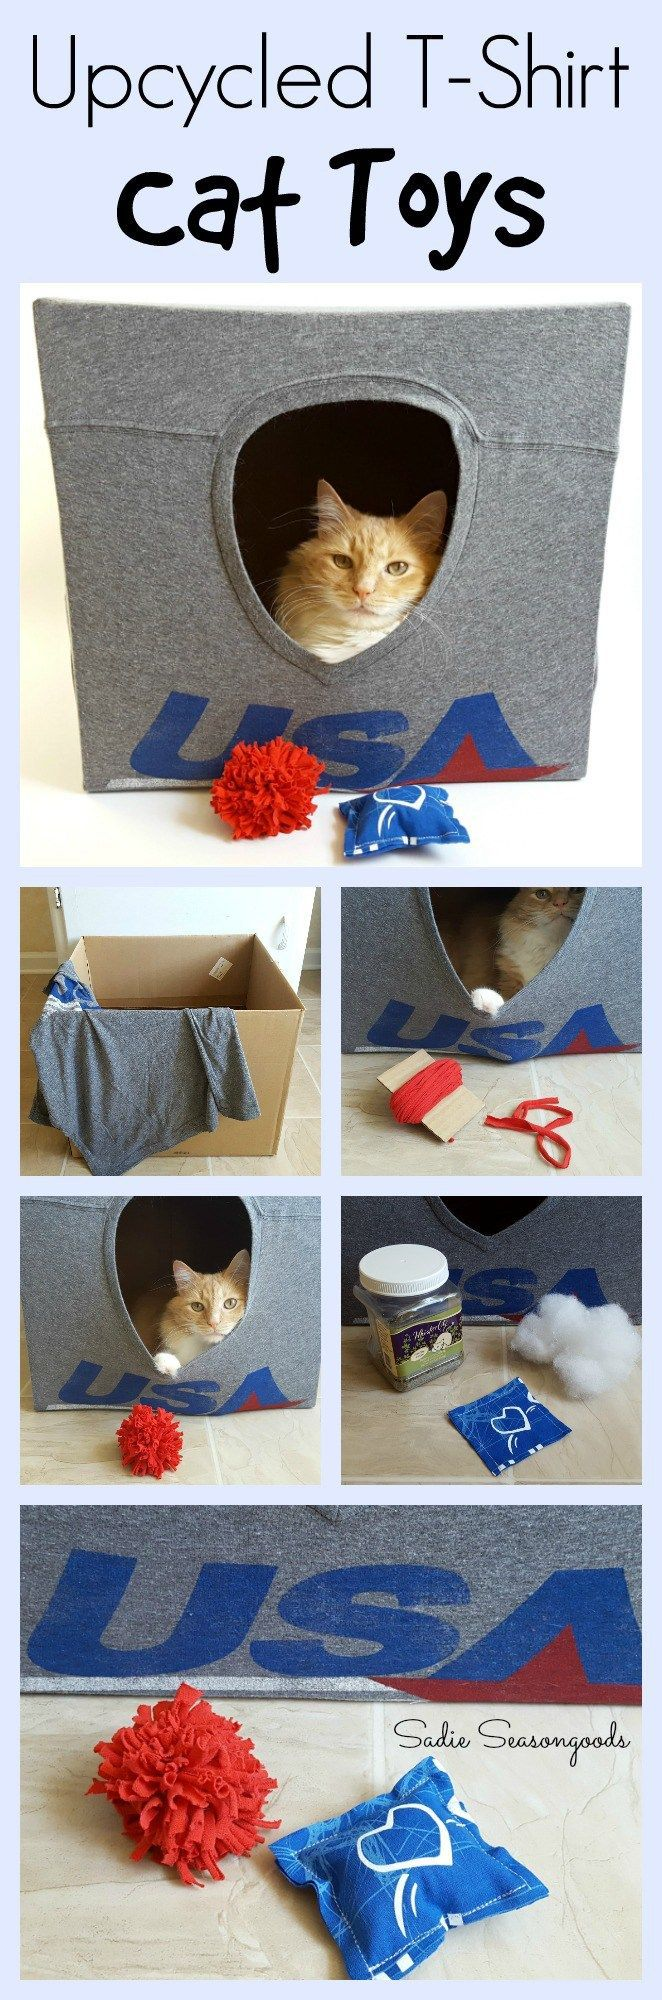 DIY t-shirt cat cave from Tipsy Elves and repurposed / upcycled thrift store tee shirt cat toys by Sadie Seasongoods / http://www.sadieseasongoods.com